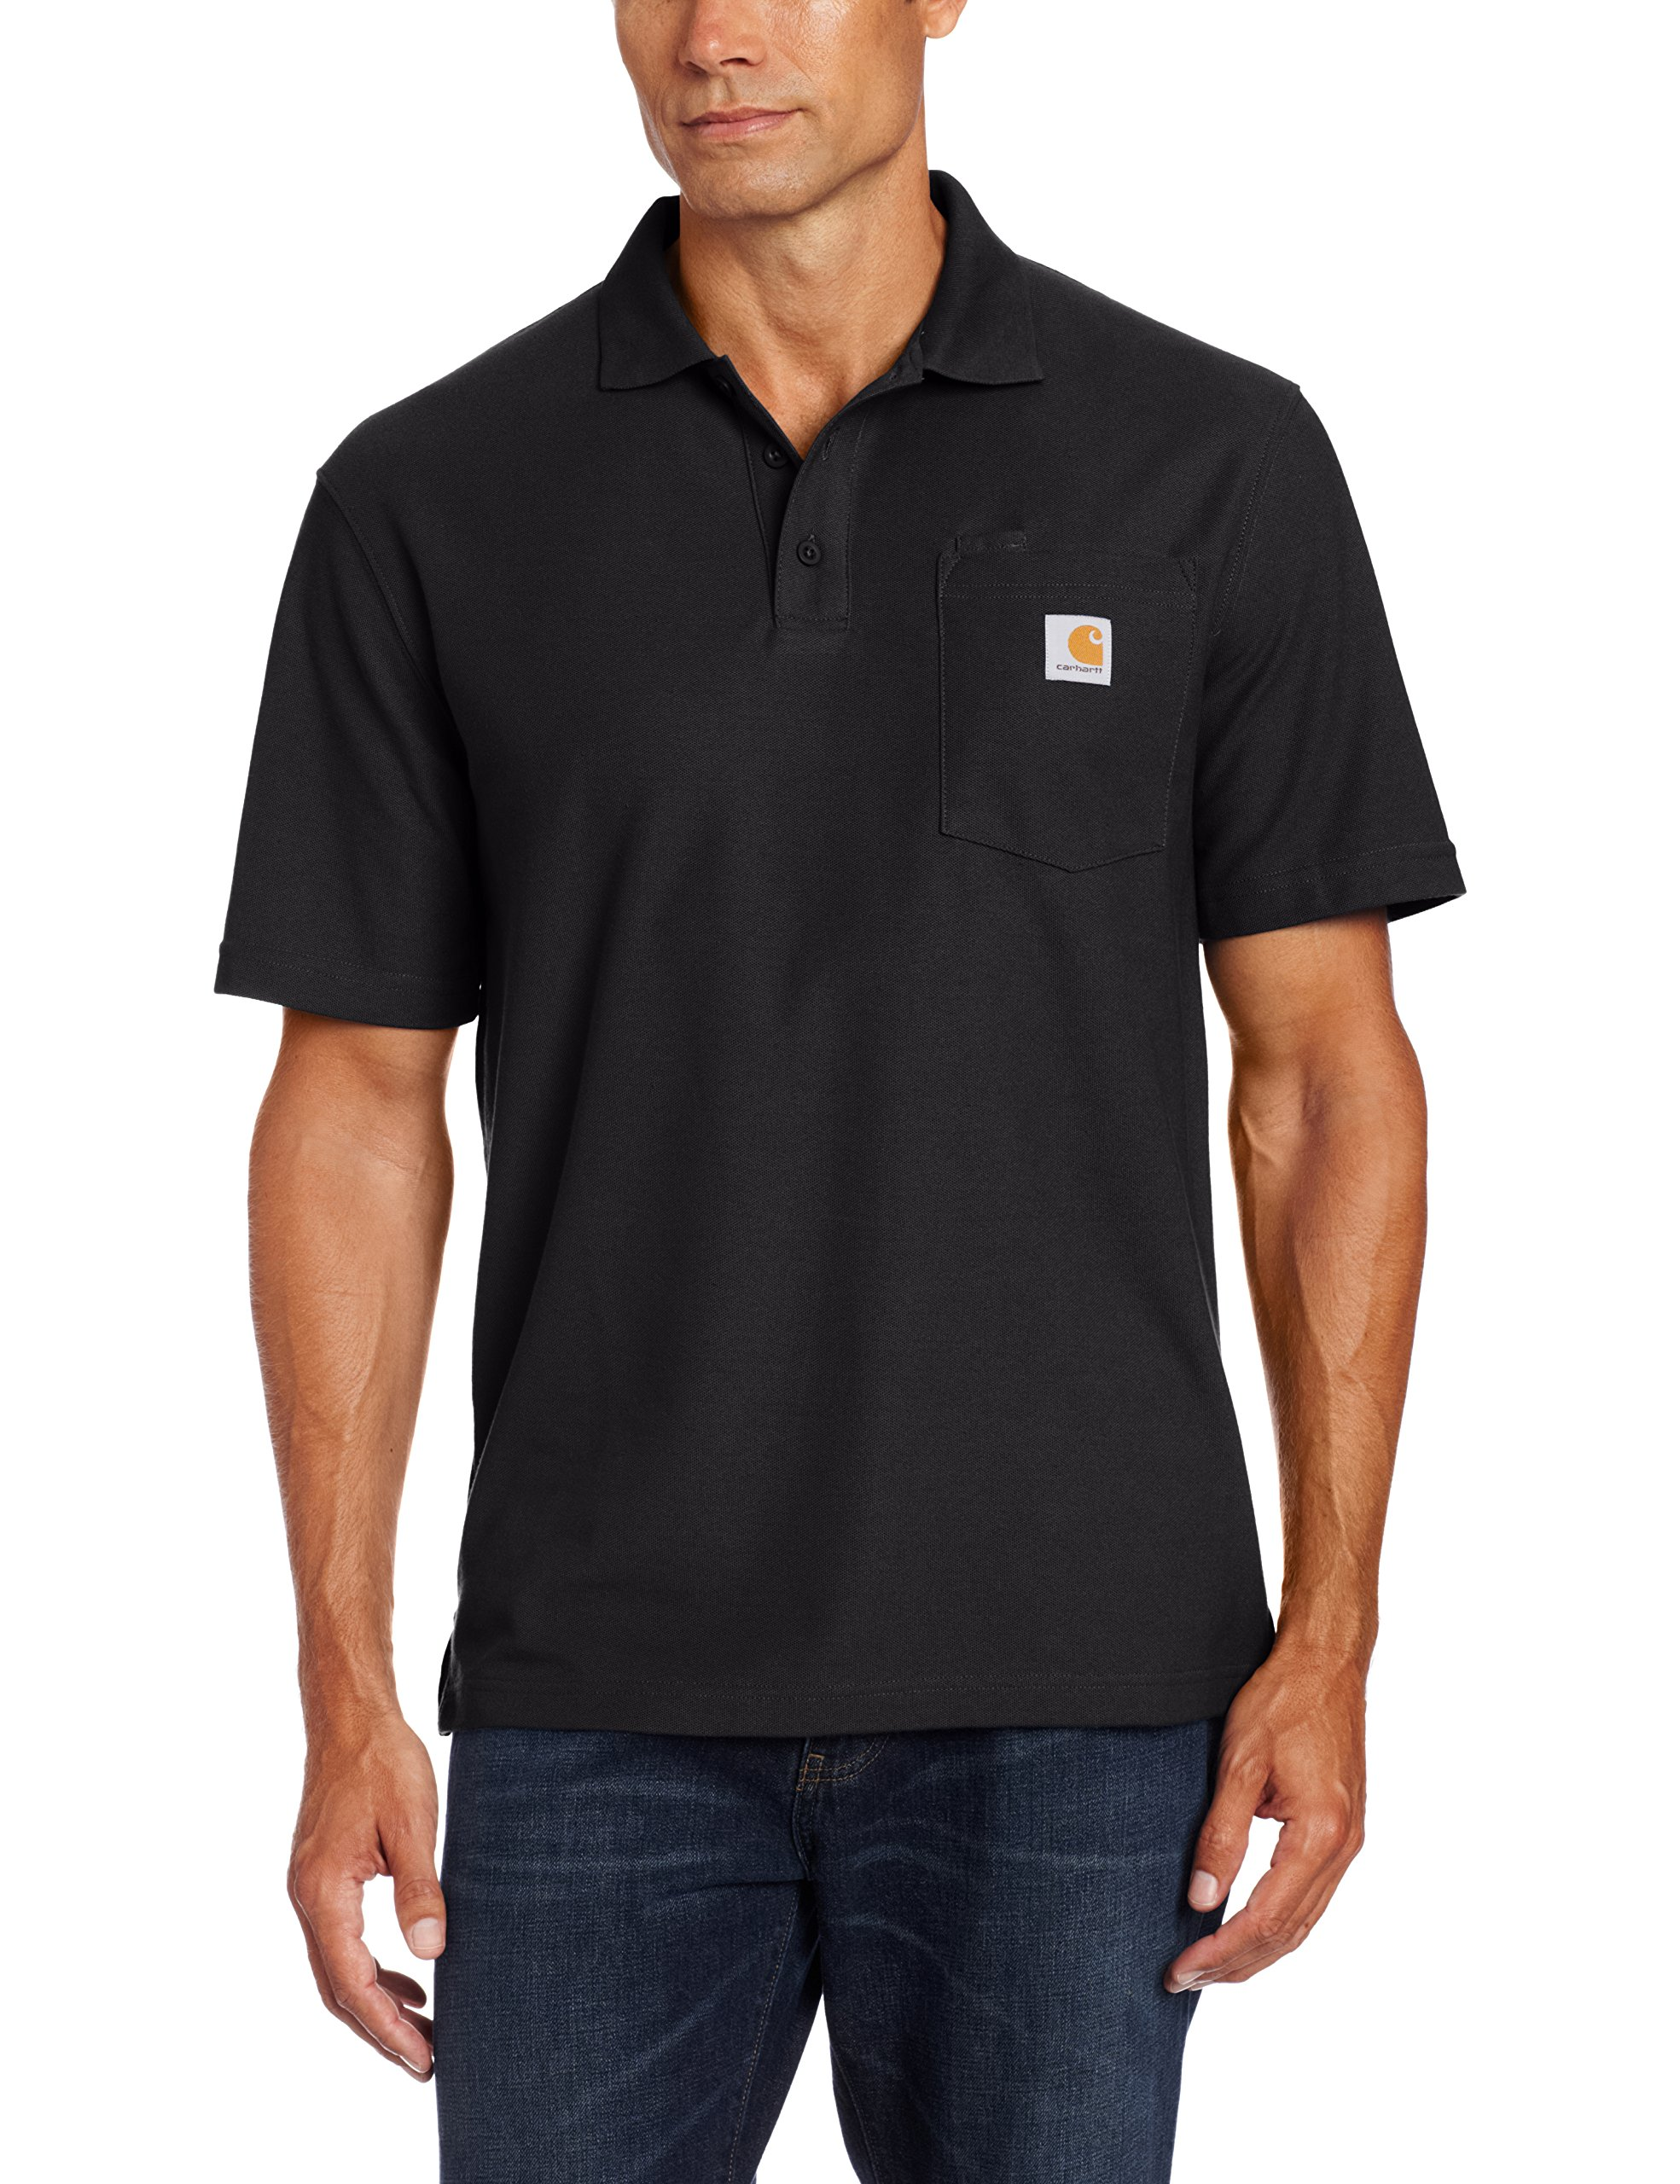 1f7960d35b29 Best Rated in Men s Polo Shirts   Helpful Customer Reviews - Amazon.com